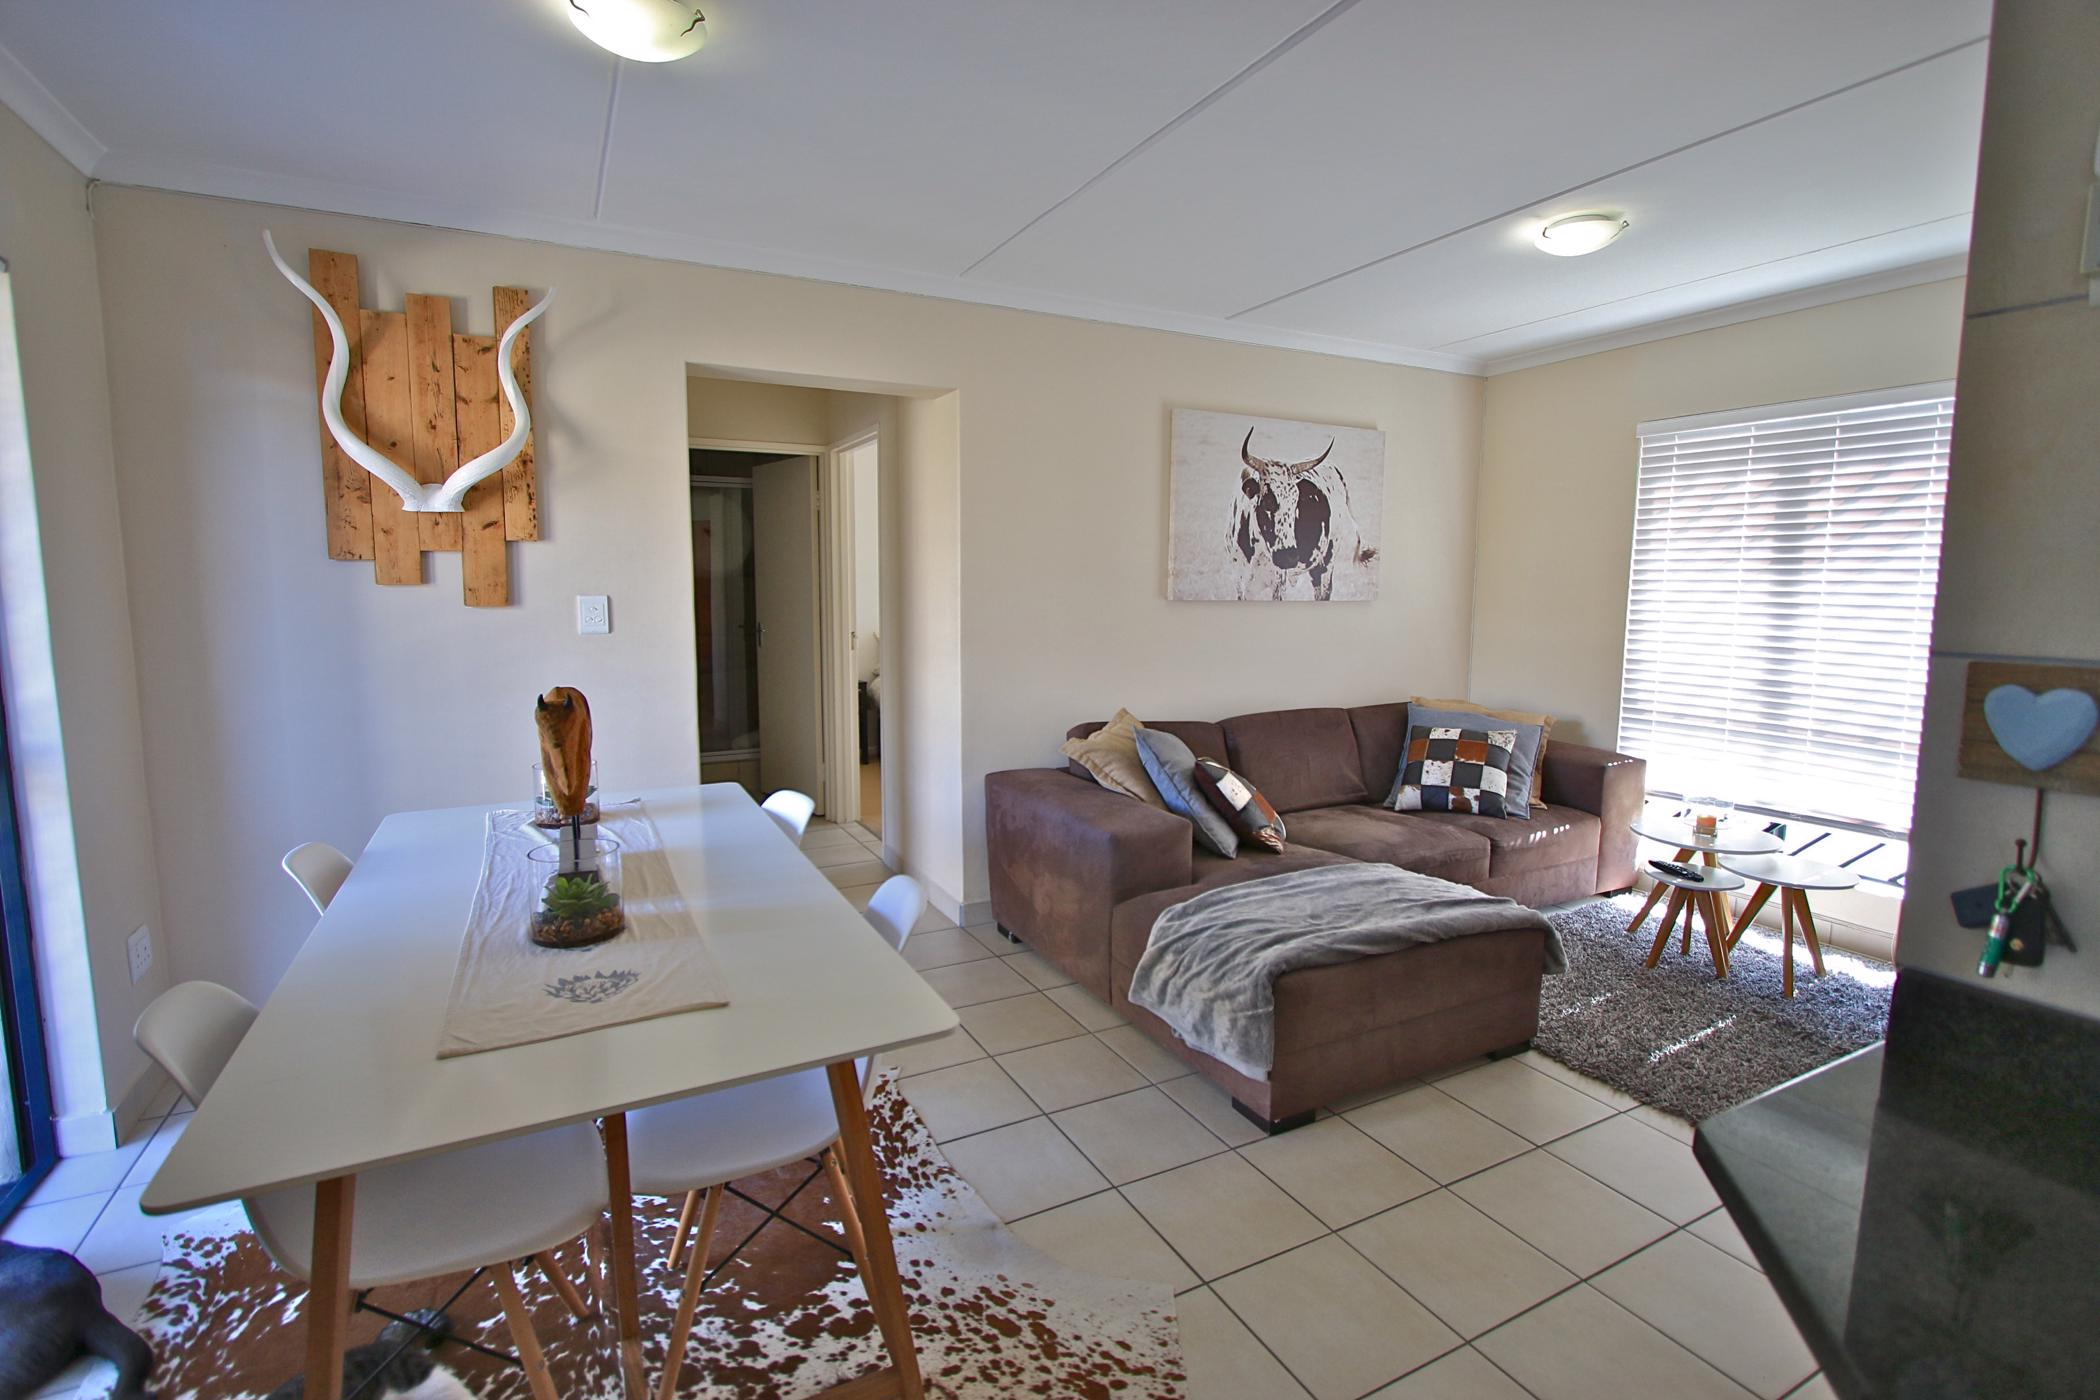 https://listing.pamgolding.co.za/images/properties/201903/701900/H/701900_H_17.jpg